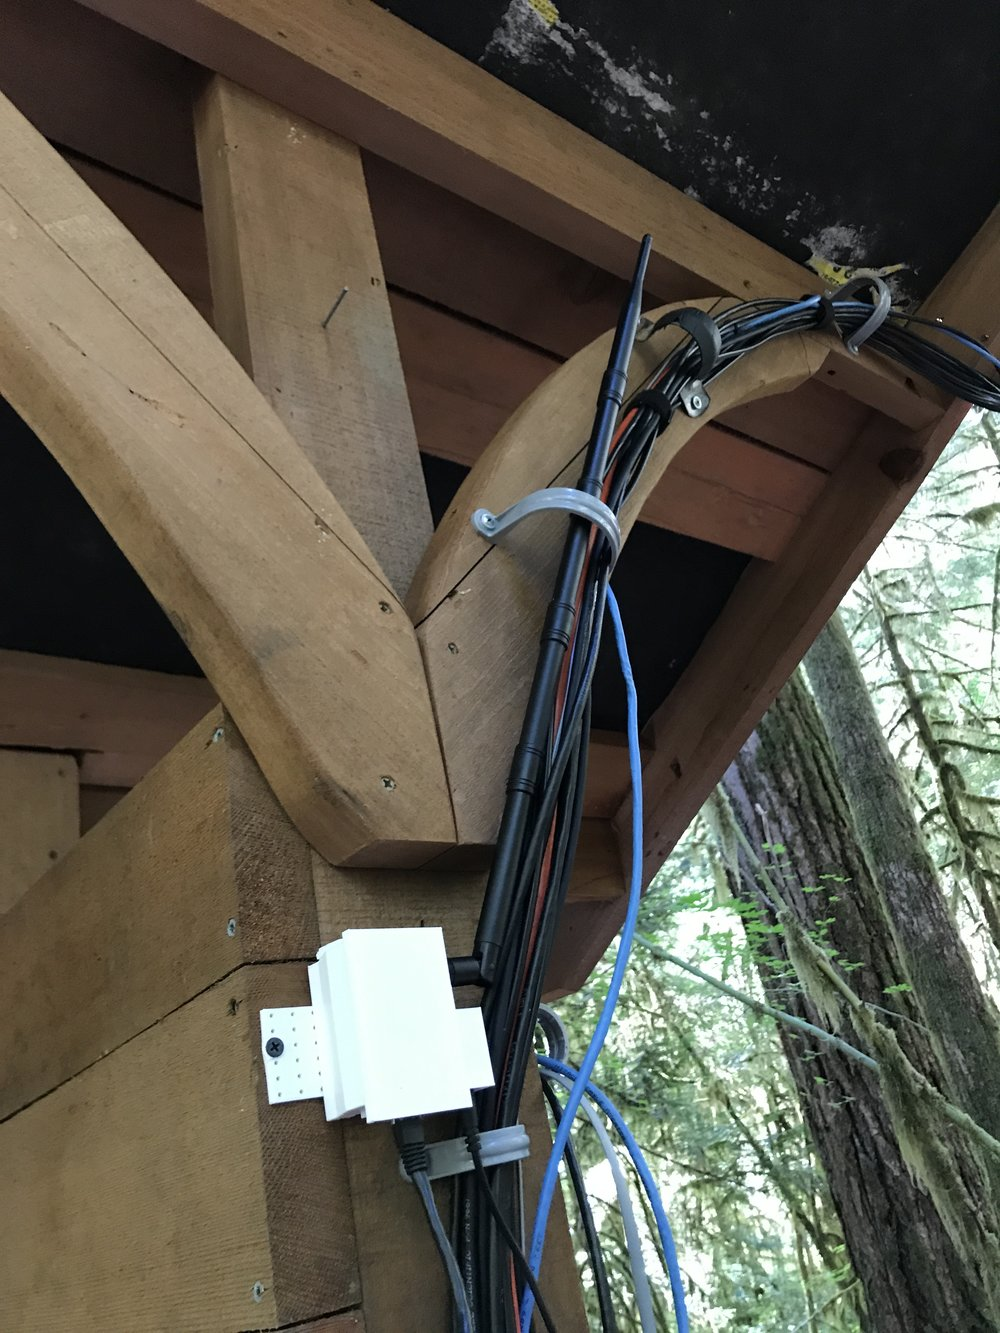 Our receiver hub connected to the power cables on the Discovery Trail weather station, recording transmissions from the Evaporometer.